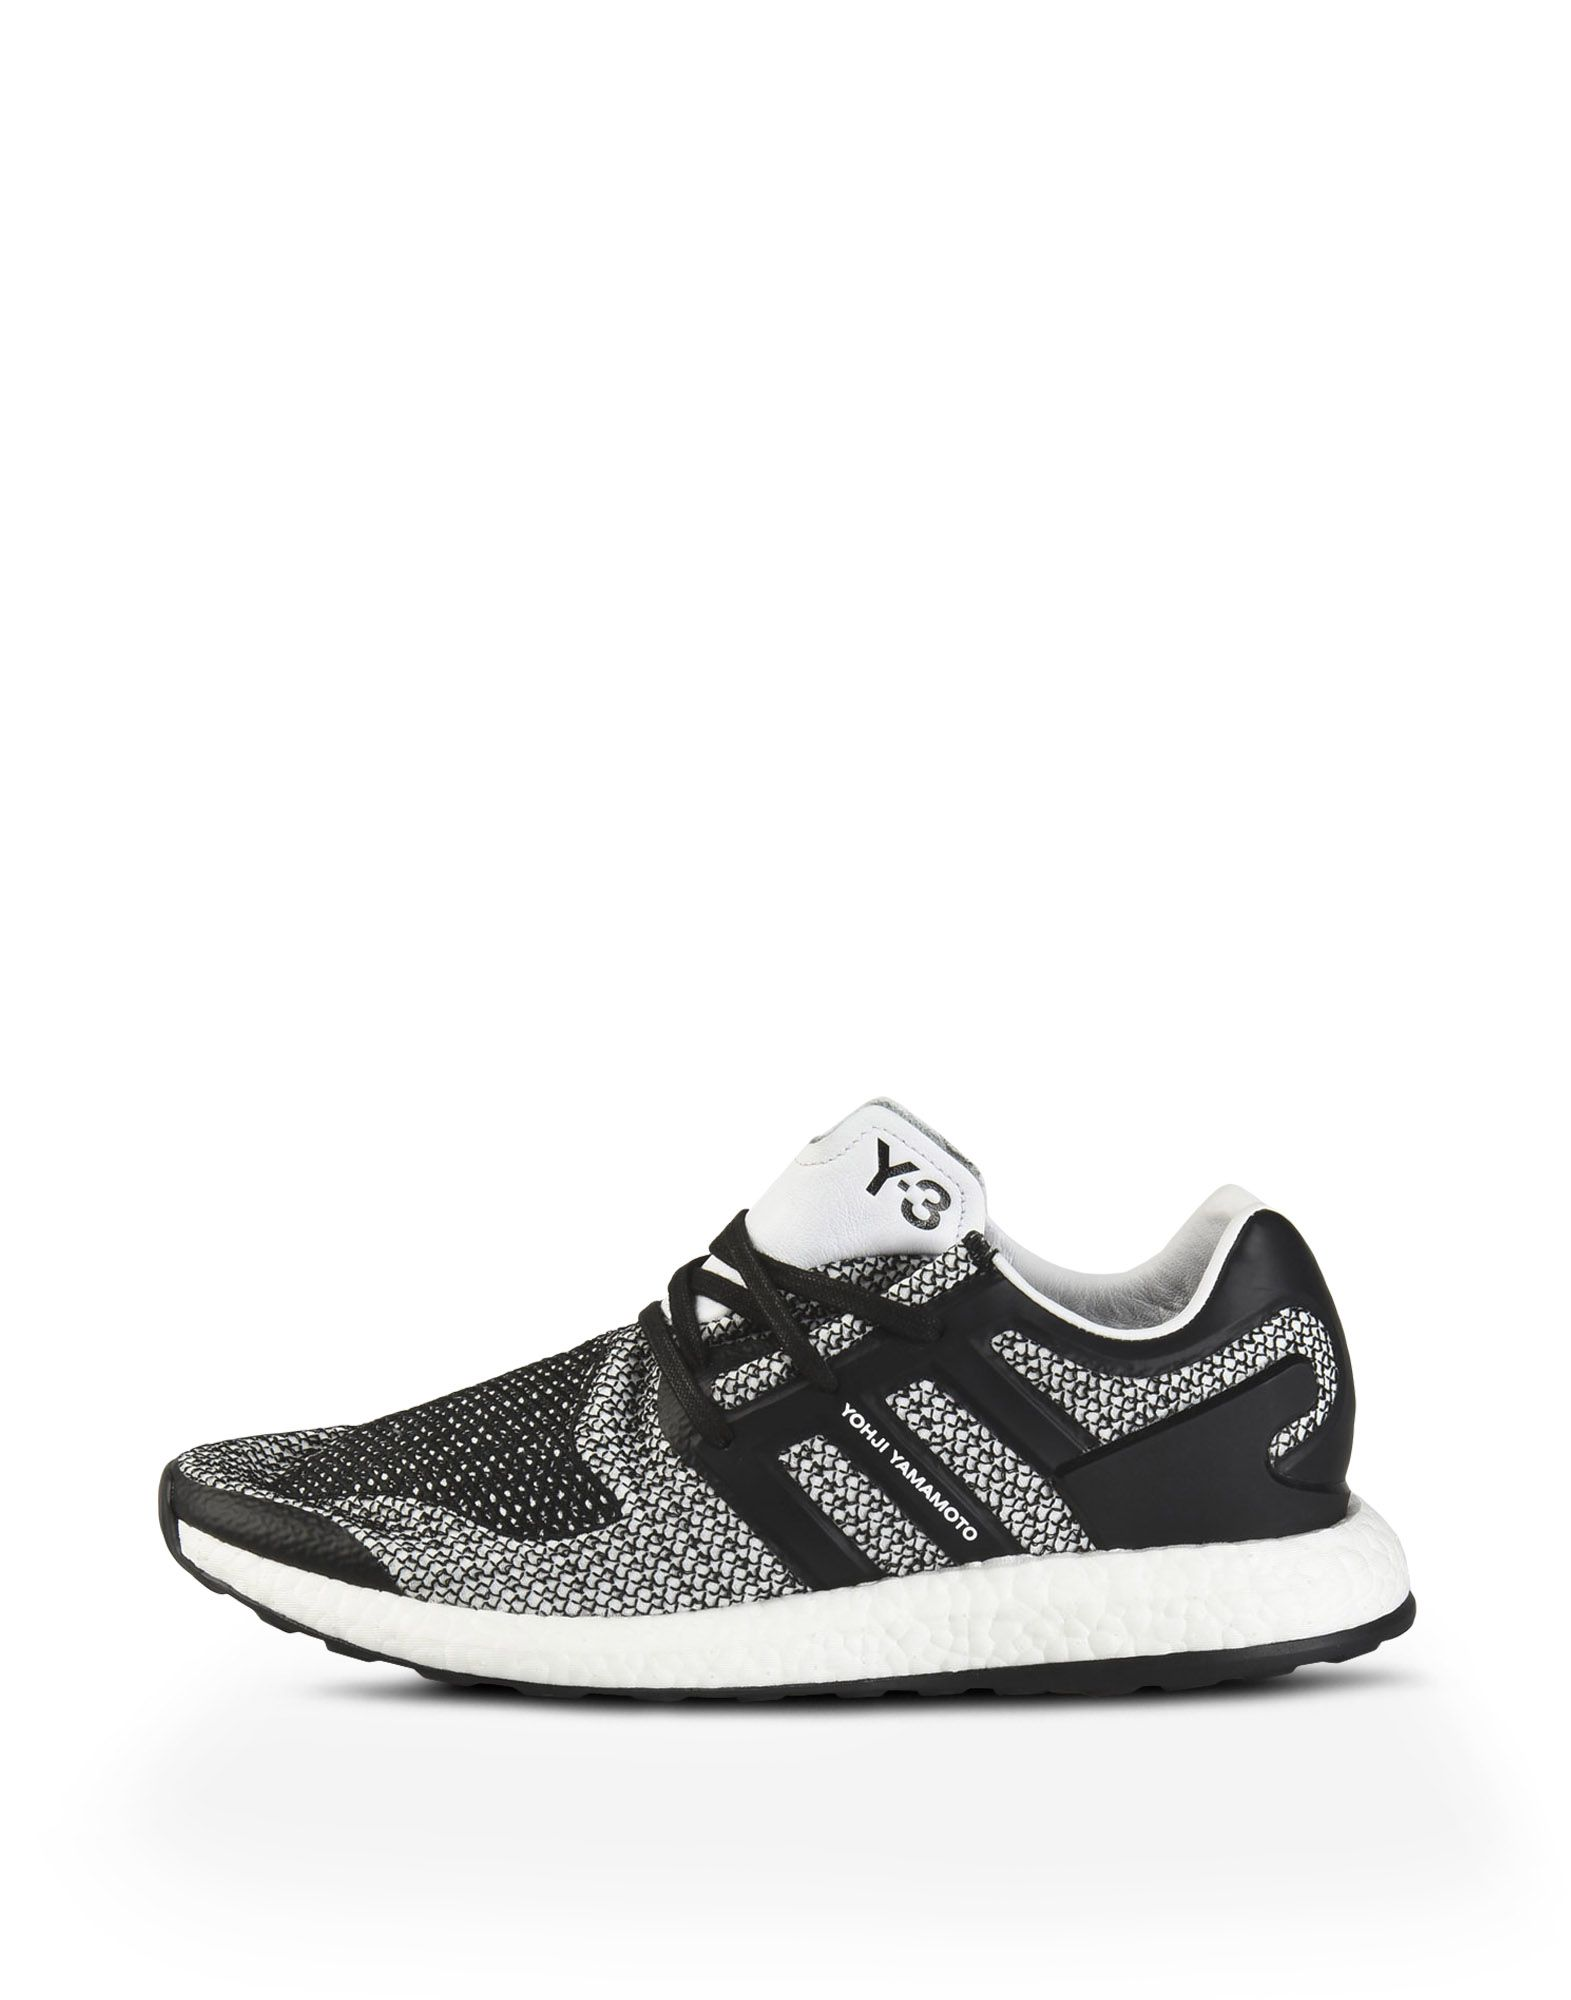 free shipping low price fee shipping outlet official Y-3 Pureboost sneakers buy cheap pictures many kinds of cheap online free shipping collections GyUsDlj